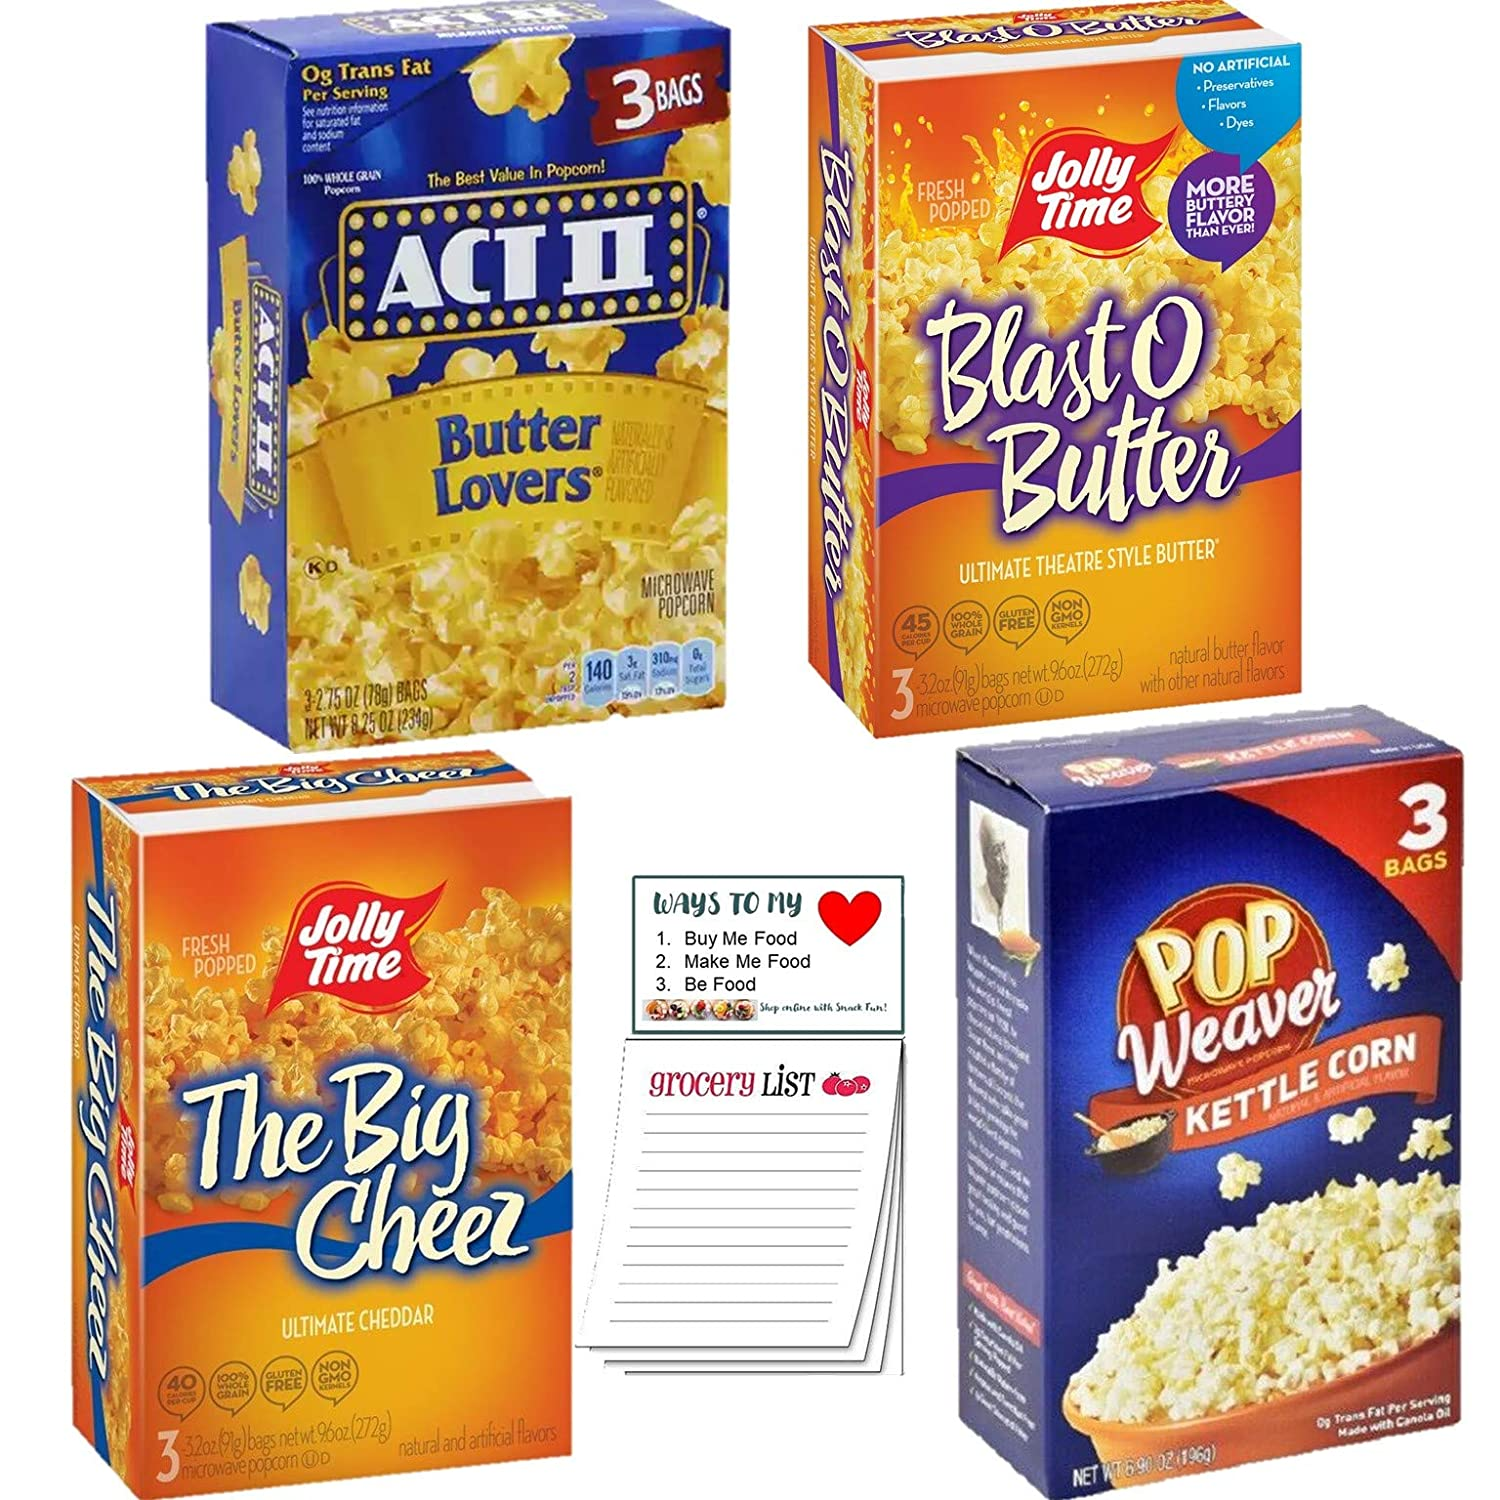 Microwave Popcorn Variety Pack of 4 | Jolly Time Blast O Butter | The Big Cheez | Pop Weaver Kettle Corn | Act II Butter Lovers | Snack Fun Shopping Pad